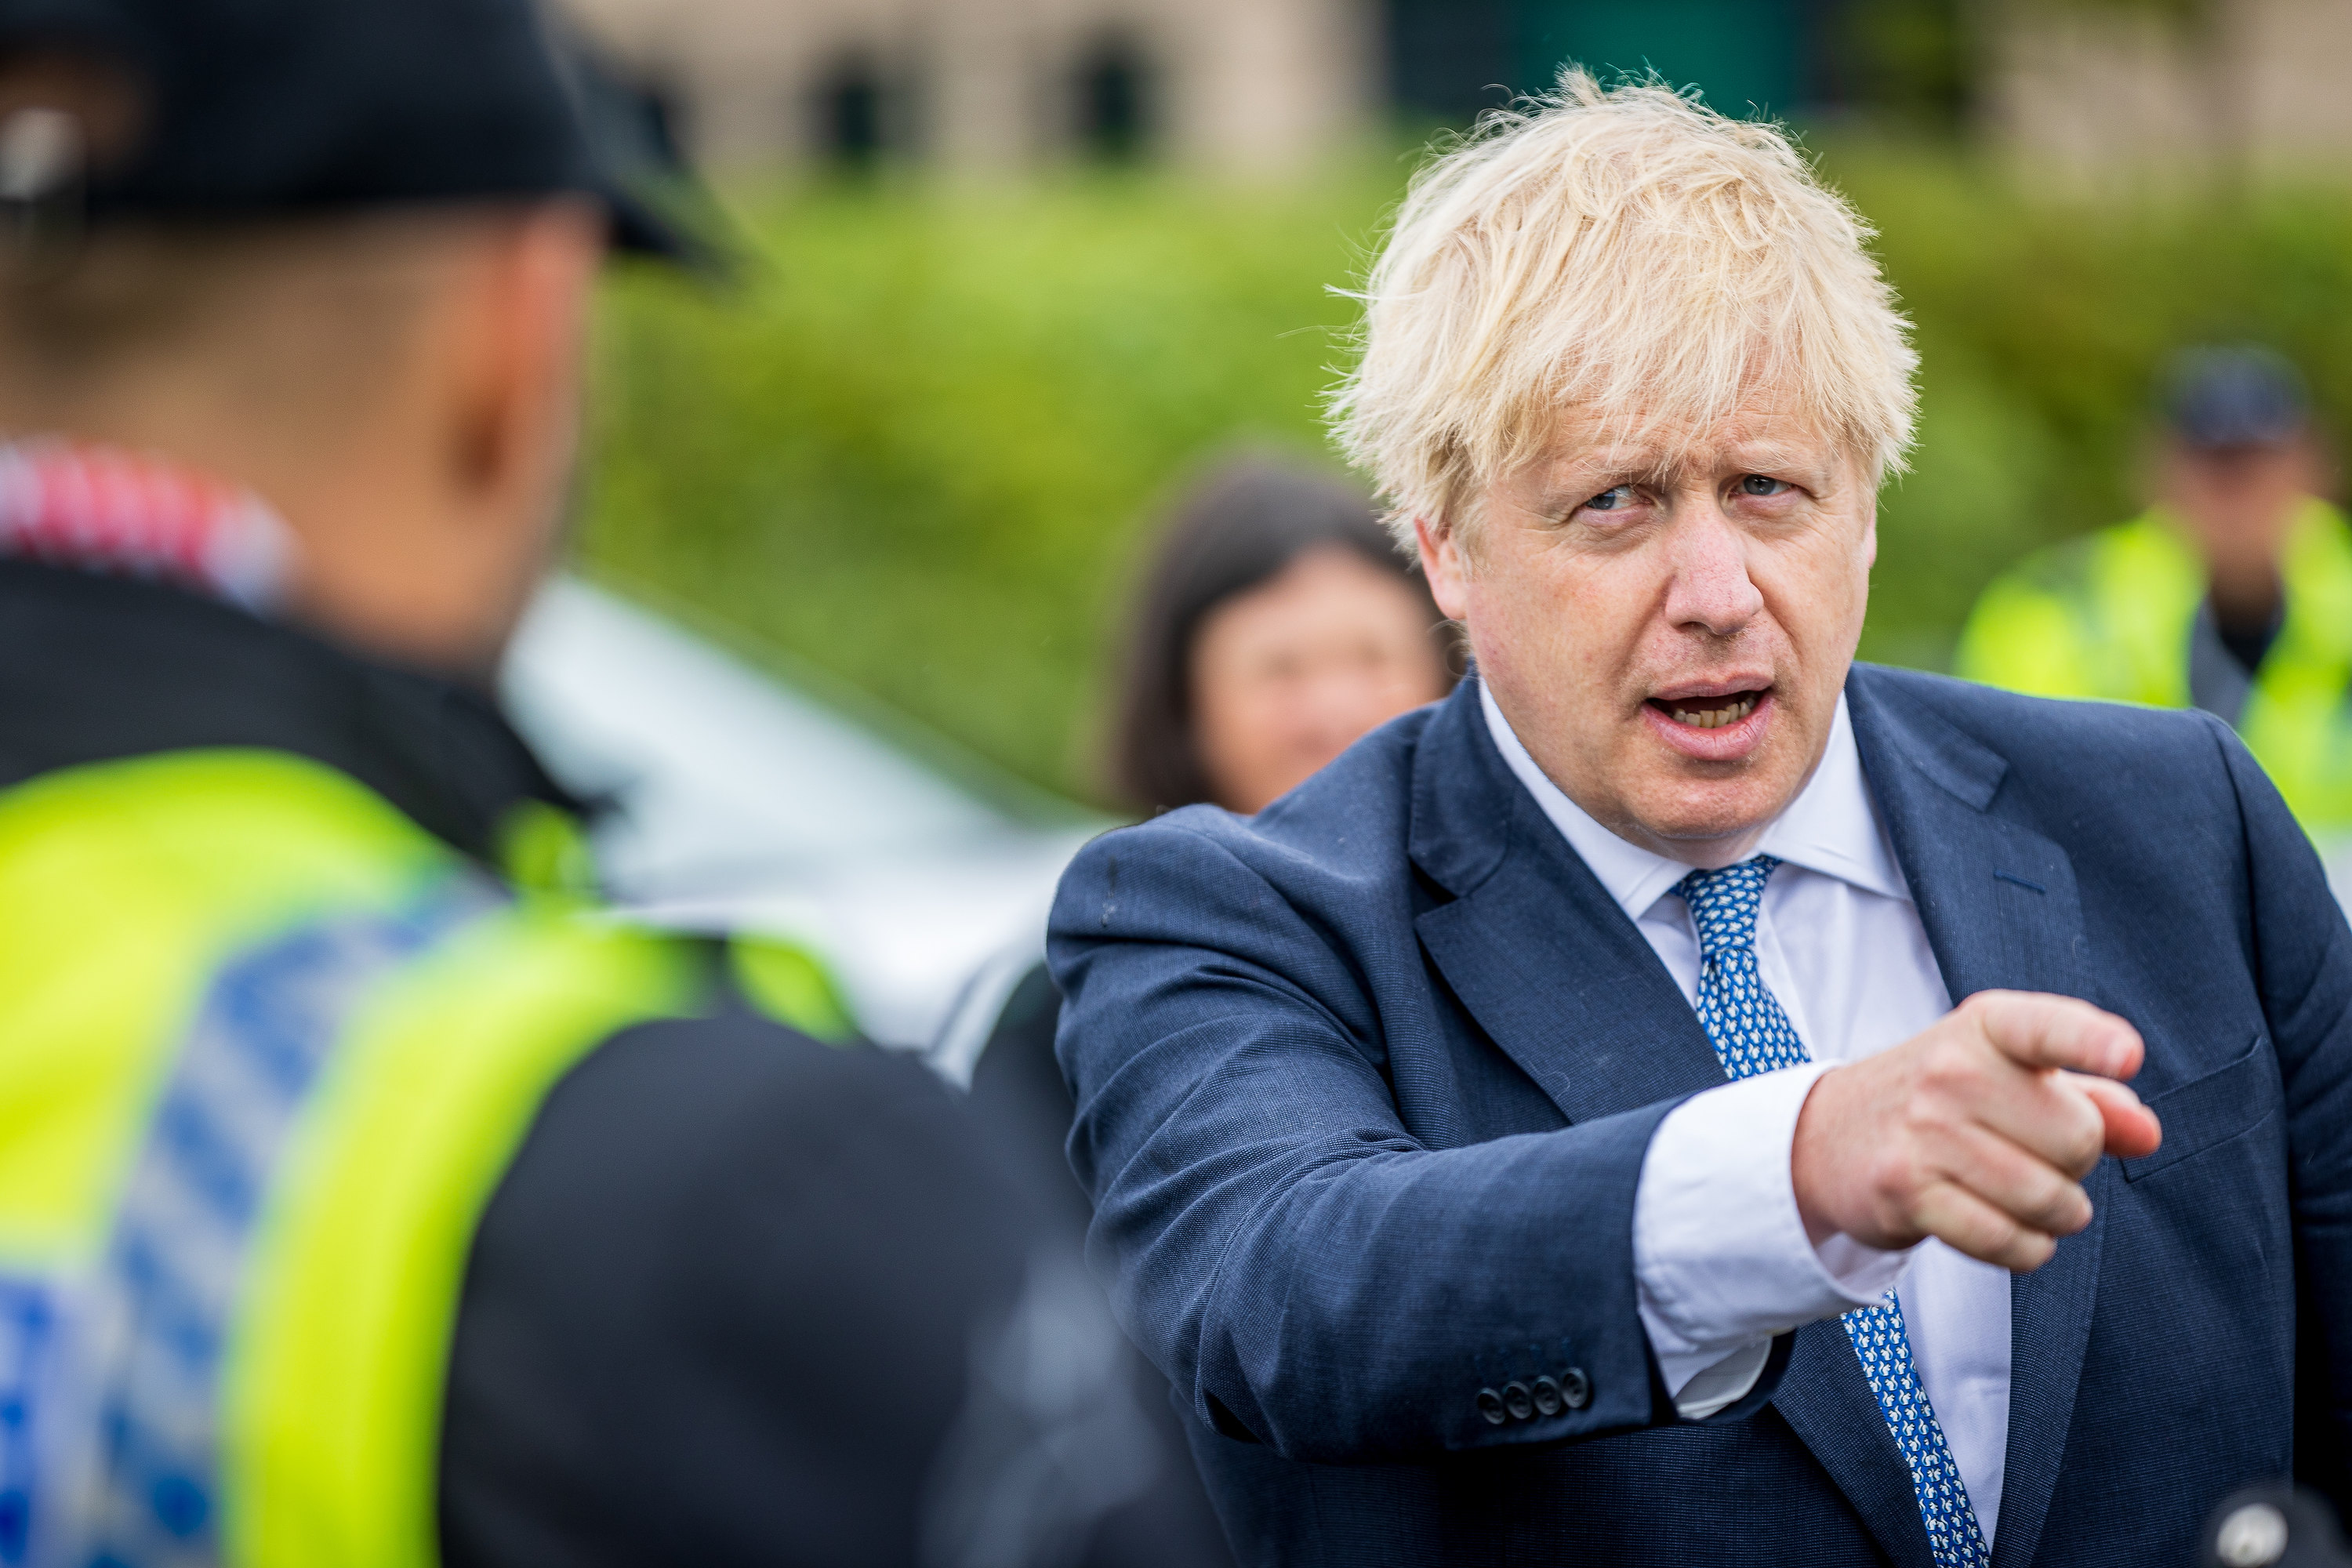 Prime Minister Boris Johnson and Home Secretary Priti Patel meeting Police Officers during a visit to North Yorkshire Police headquarters, Northallerton.